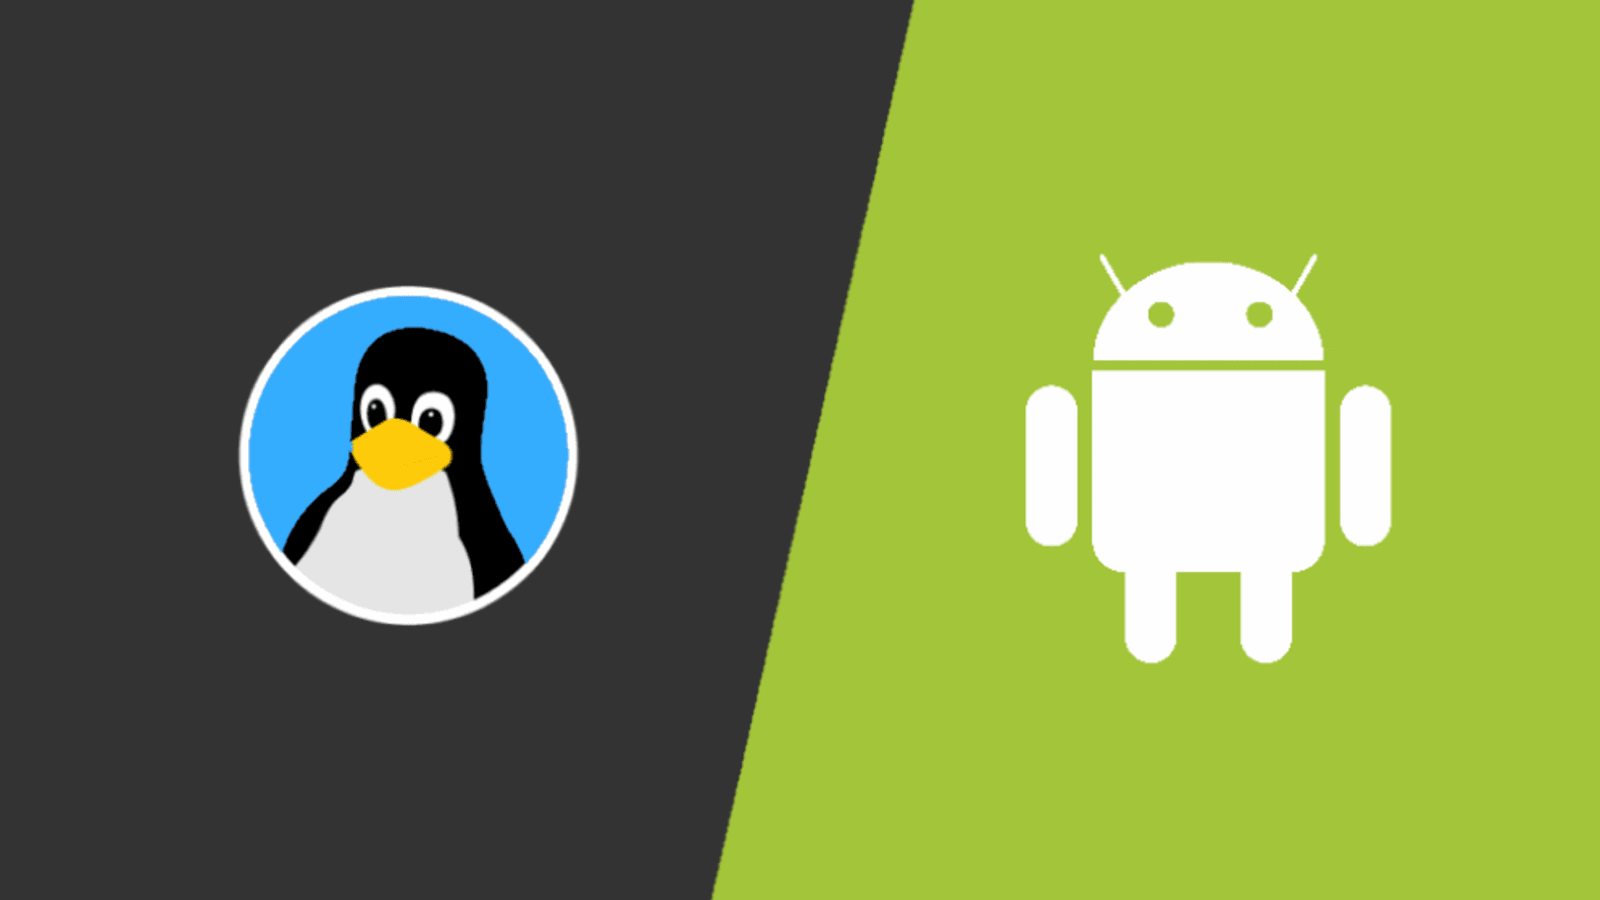 Is Android Linux?